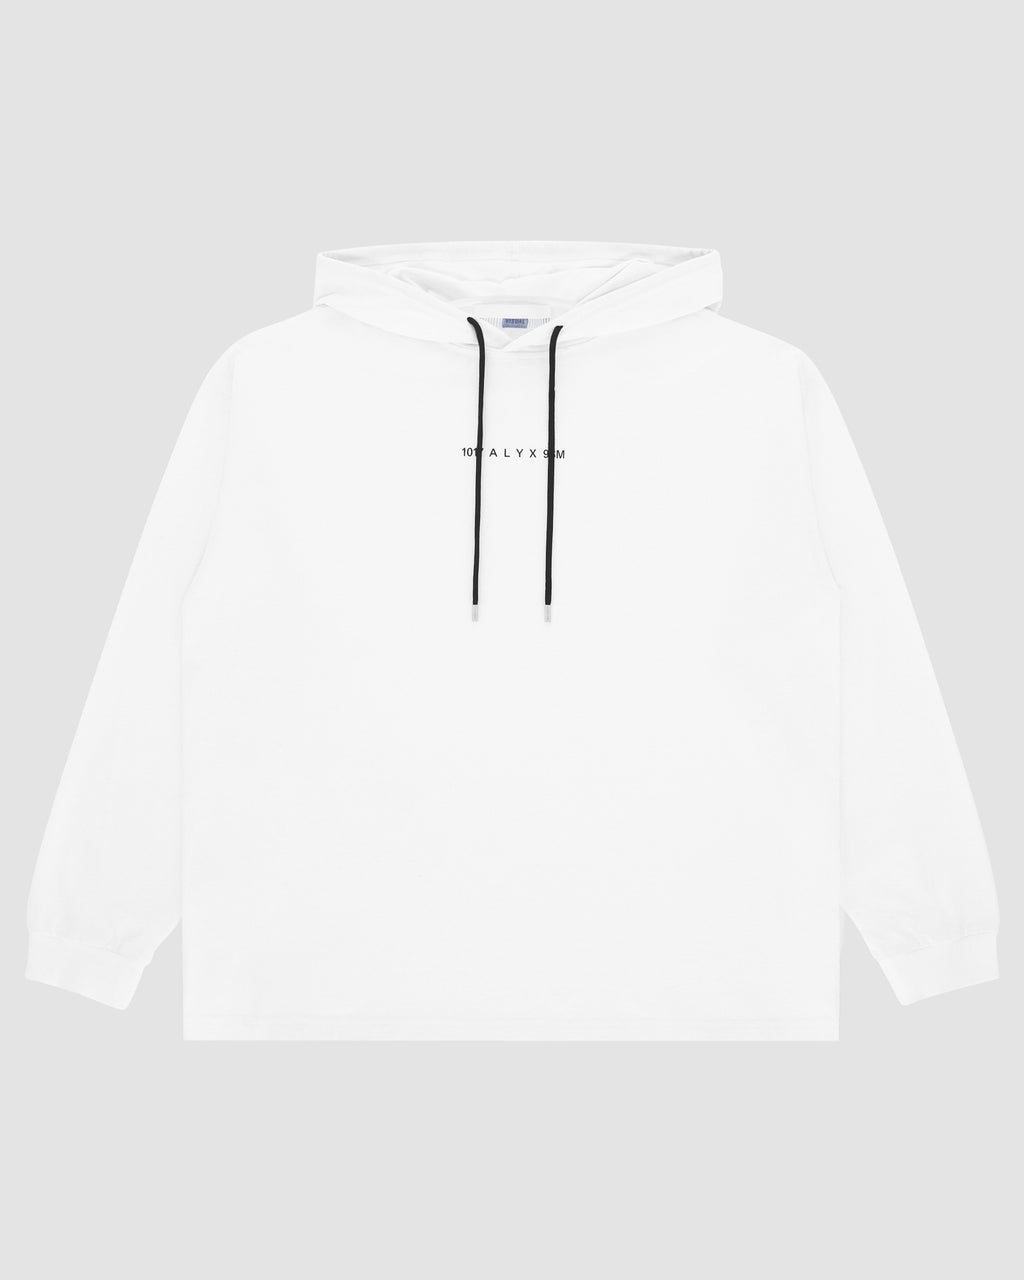 1017 ALYX 9SM | LOGO HOODED TEE | Sweatshirt | F19, Visual, White